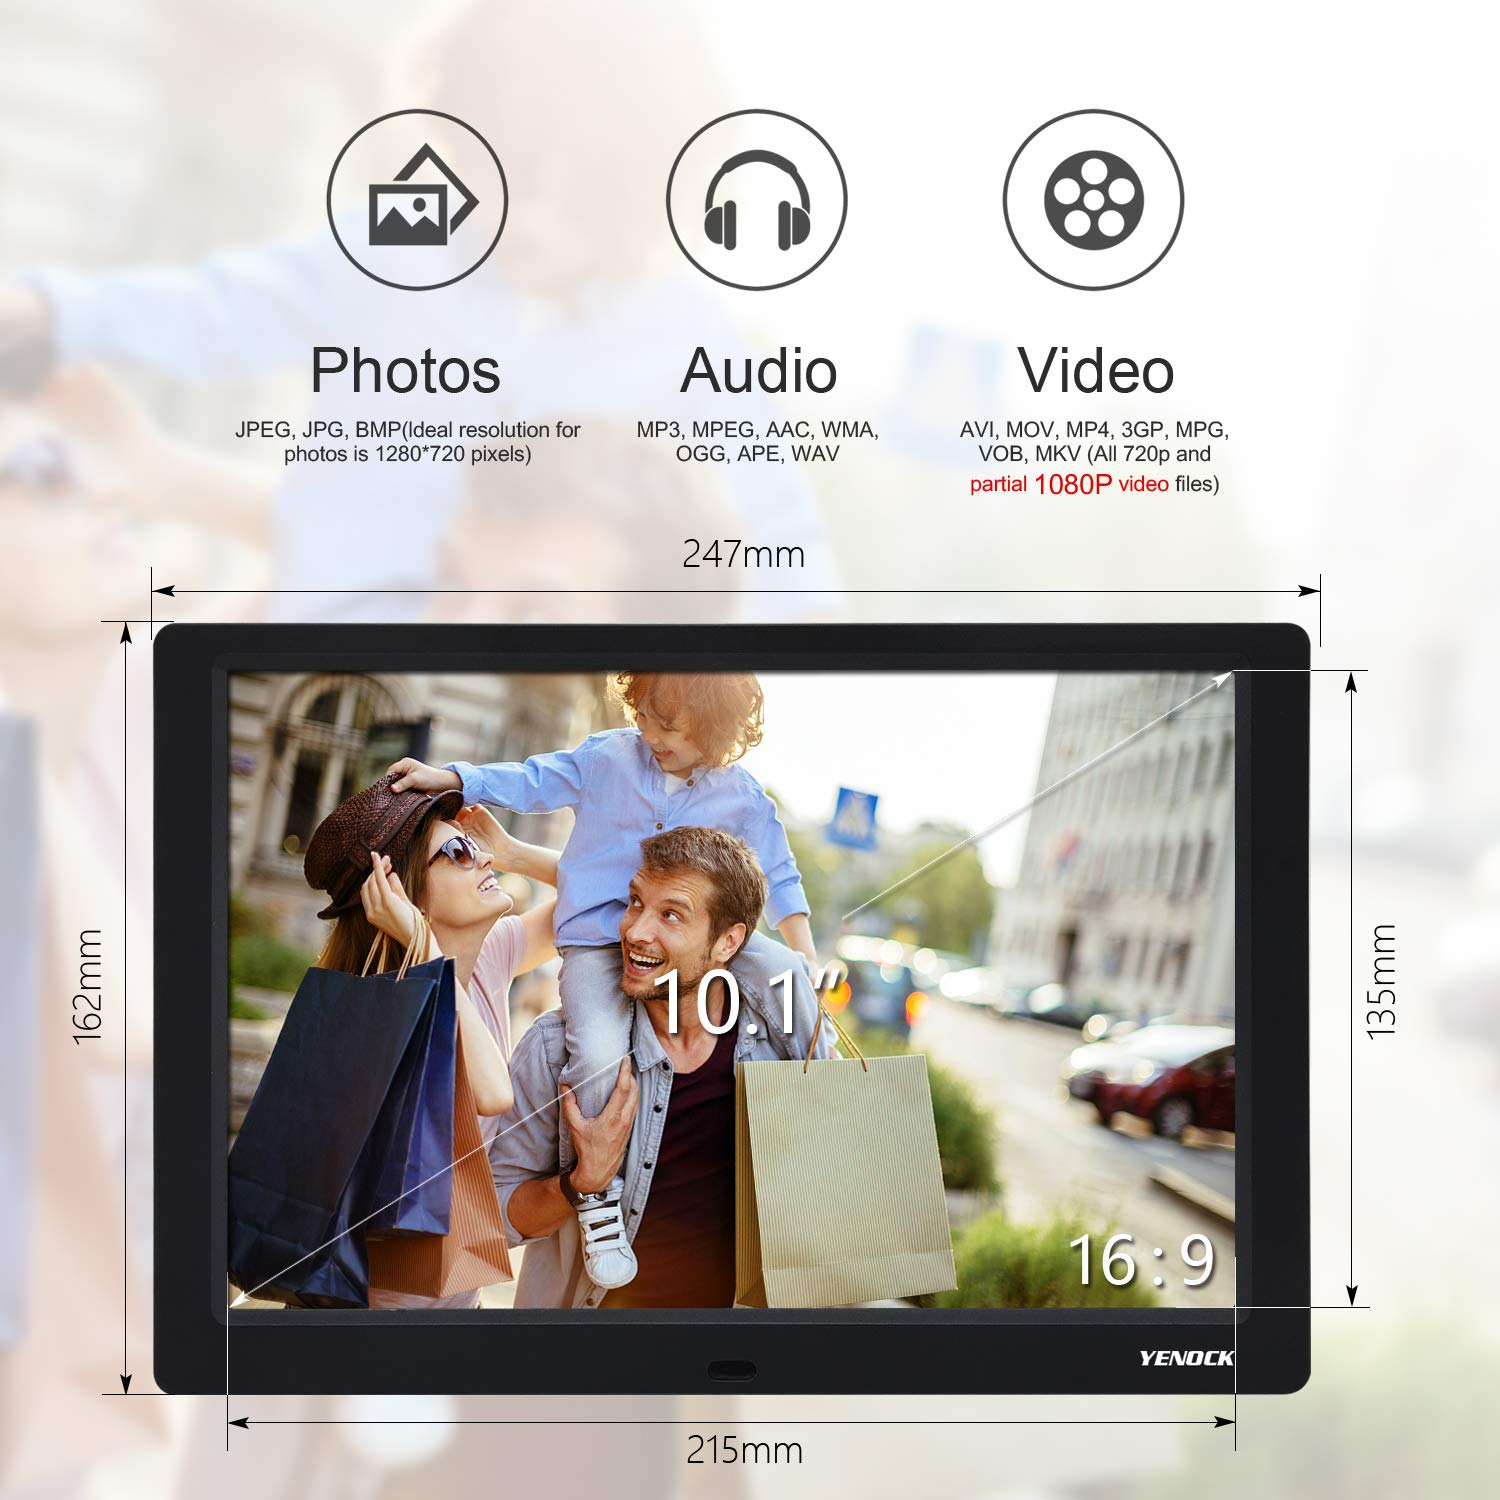 YENOCK Digital Picture Frame, 10.1 Inch IPS Screen Digital Photo Frame 1280×800 Pixels High Resolution Photo/Music/HD Video Player/Calendar/Alarm Auto On/Off Advertising Player with Remote Control by YENOCK (Image #4)